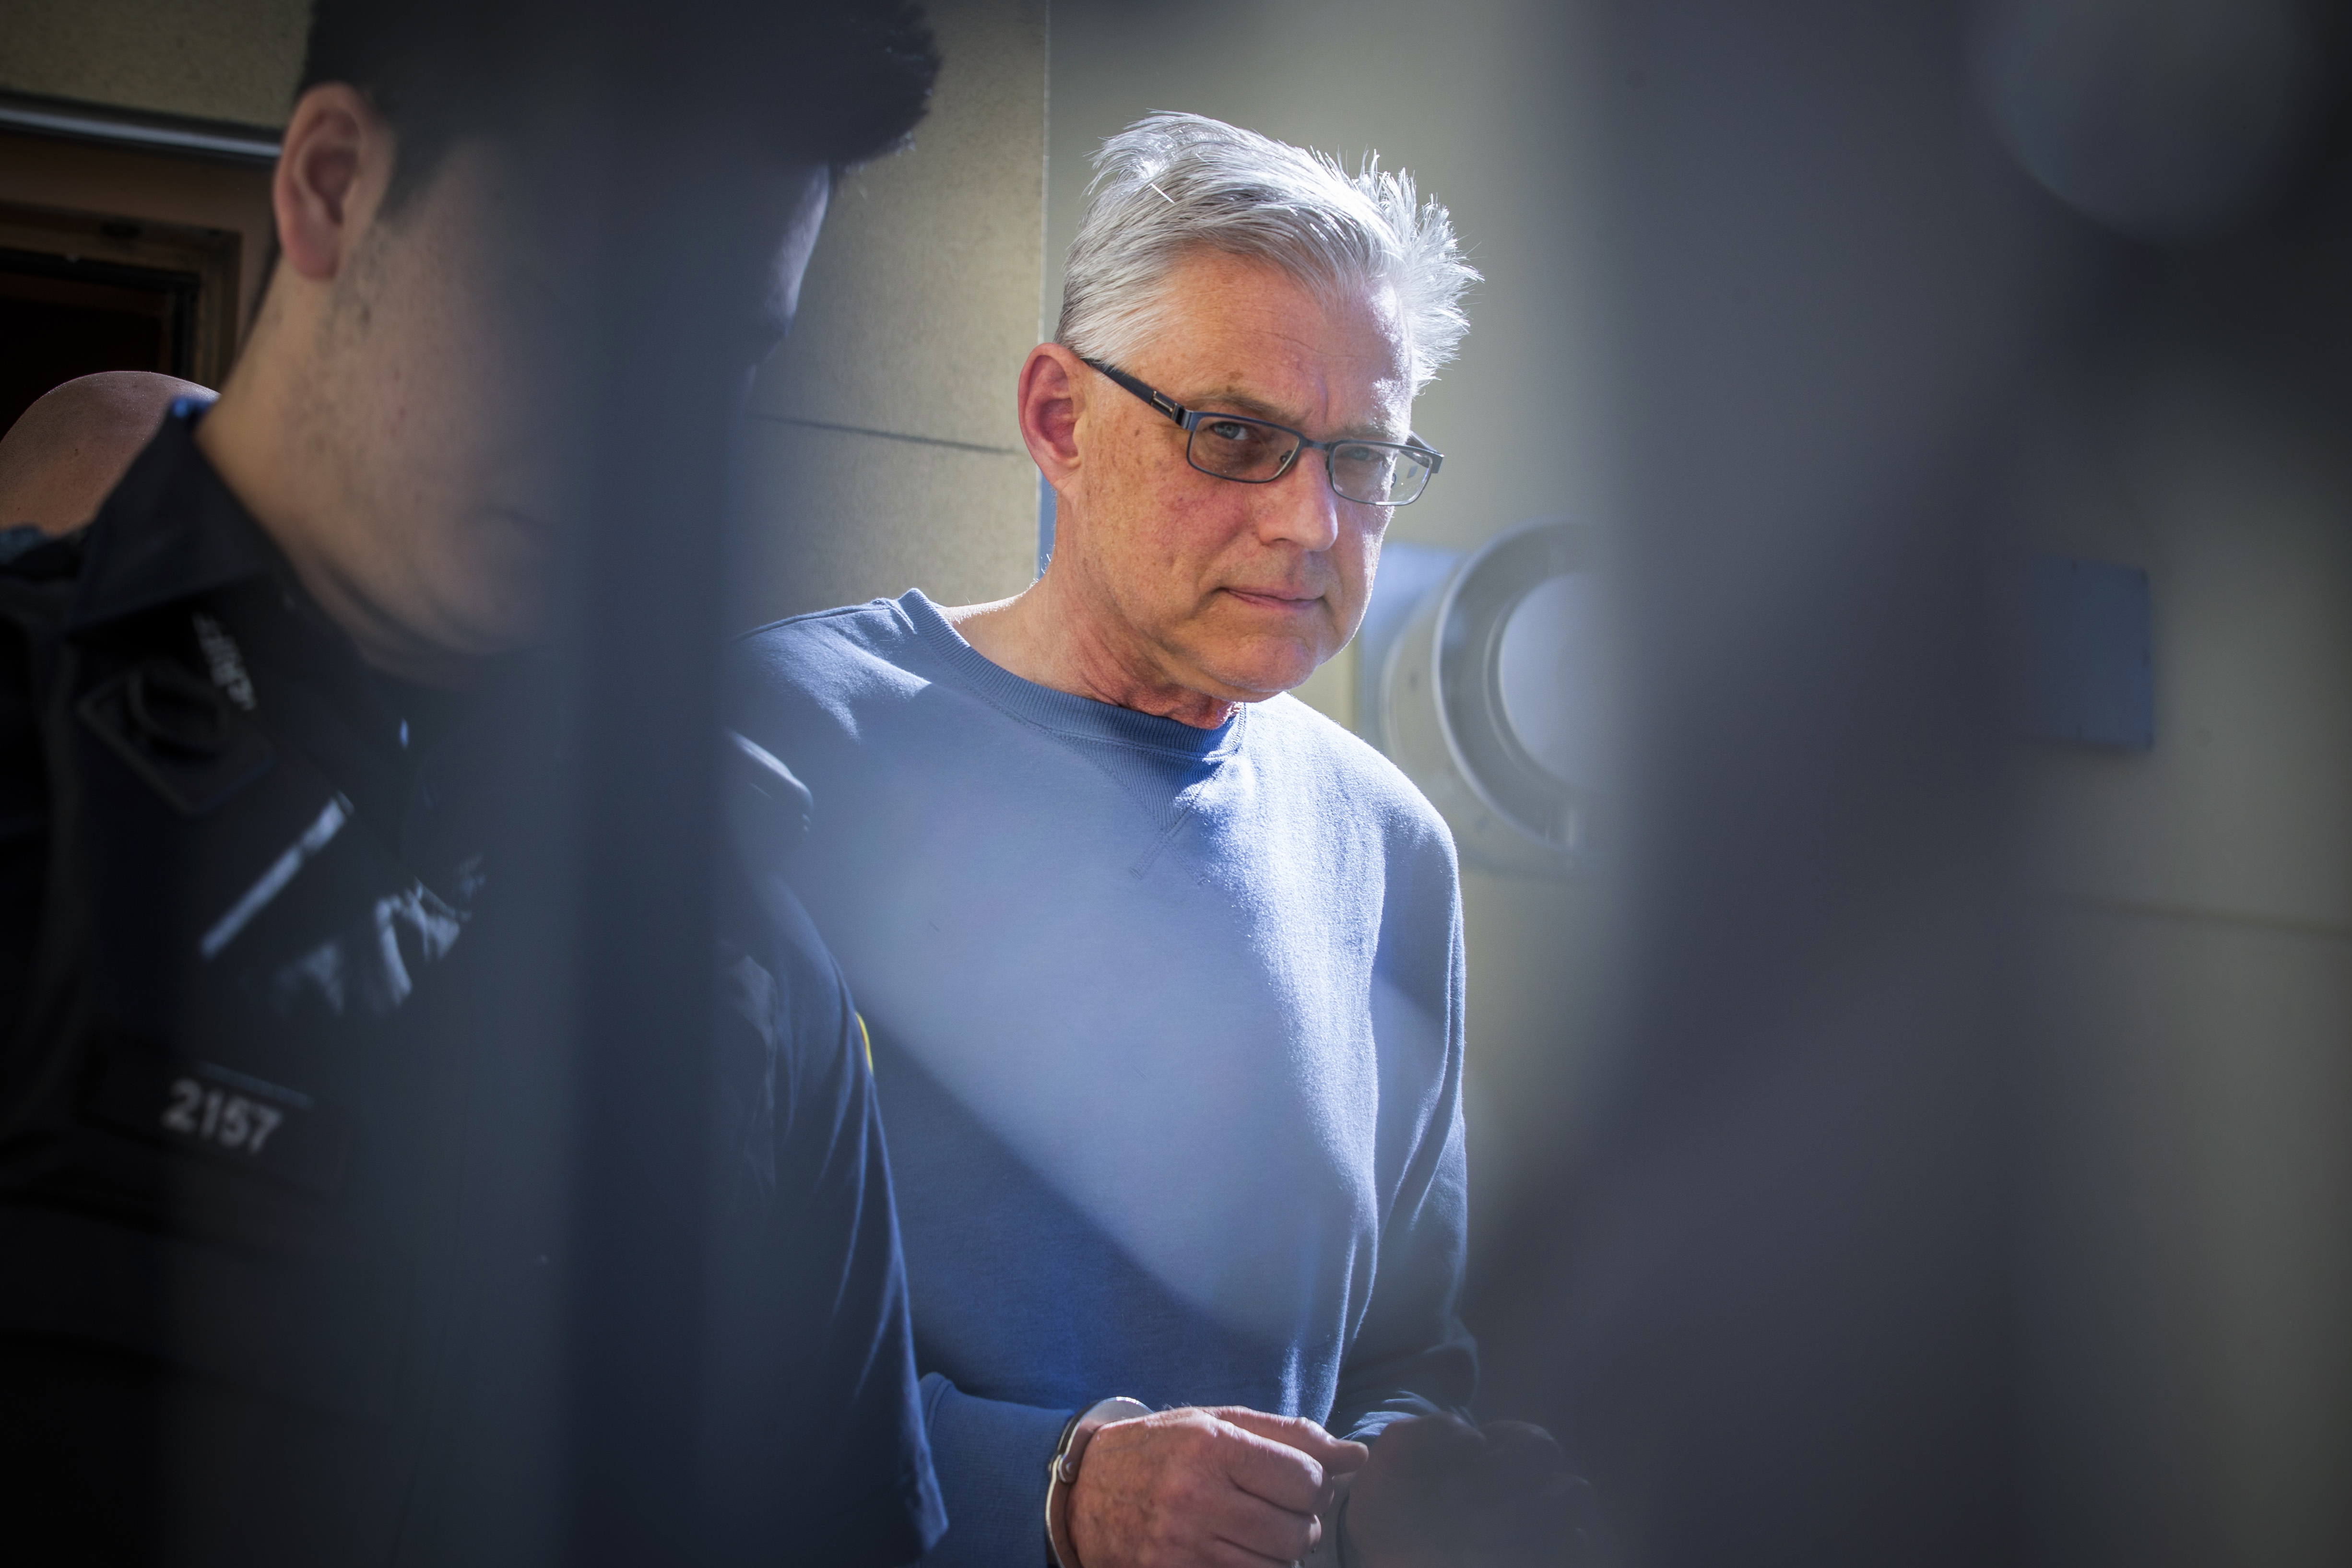 John Brittain, 68, is escorted in police custody at the Penticton Courthouse on April 16, 2019. Brittain was charged with three counts of first-degree murder and one count of second-degree murder in a Penticton shooting. (Ben Nelms/CBC)